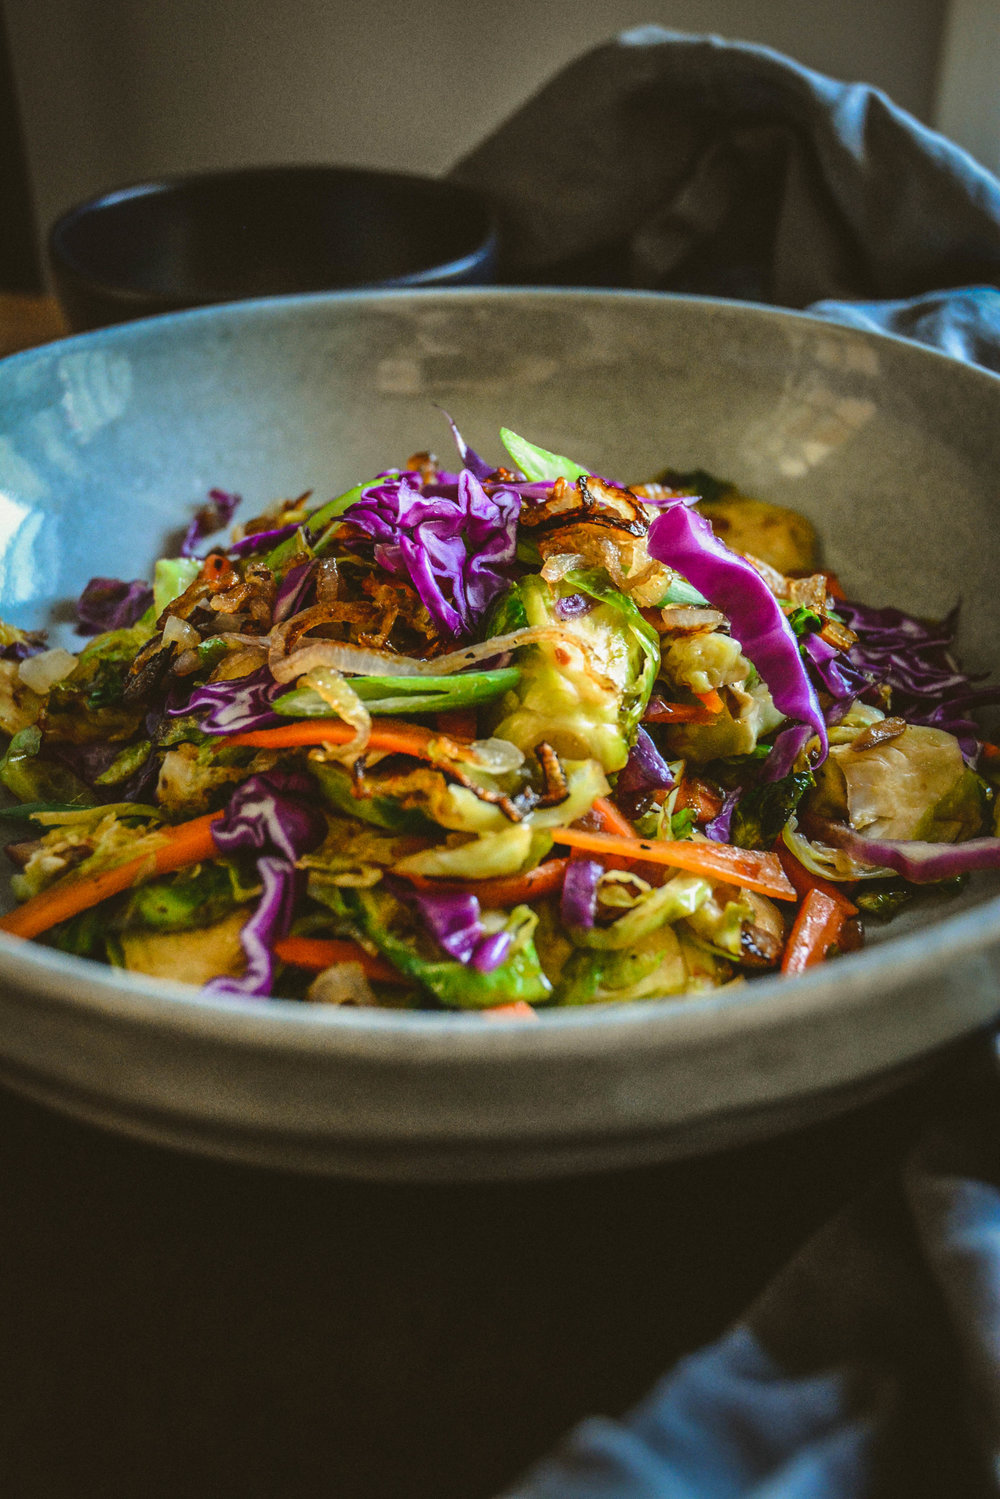 Brussels sprouts salad with red cabbage and sweet chili sauce